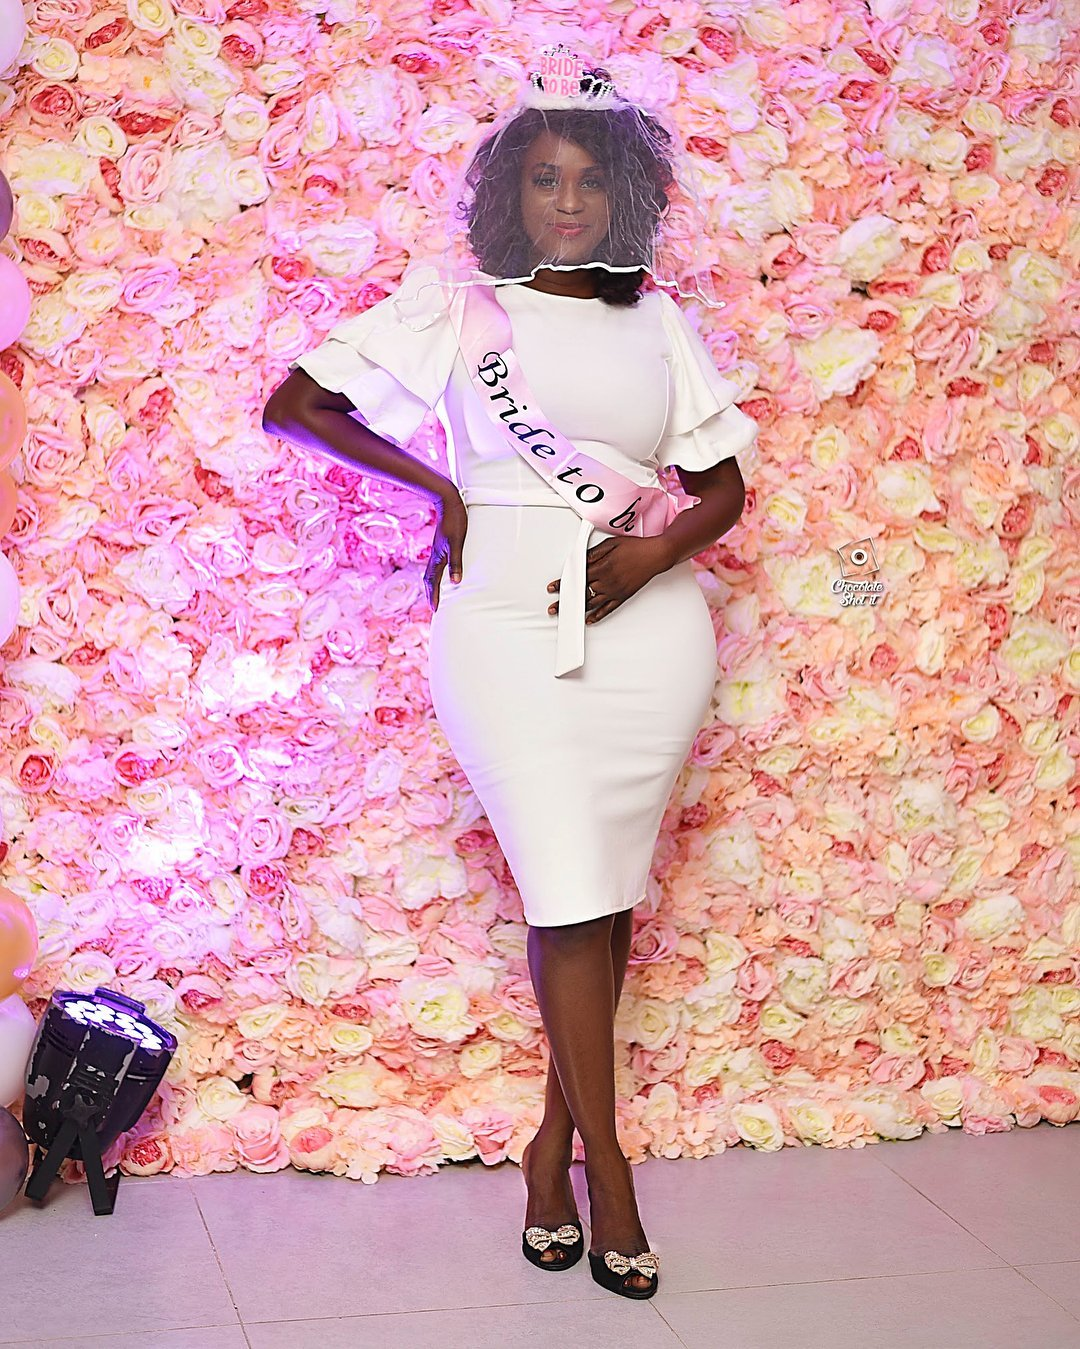 Photos from the bachelorette party of actress Bibi Bright